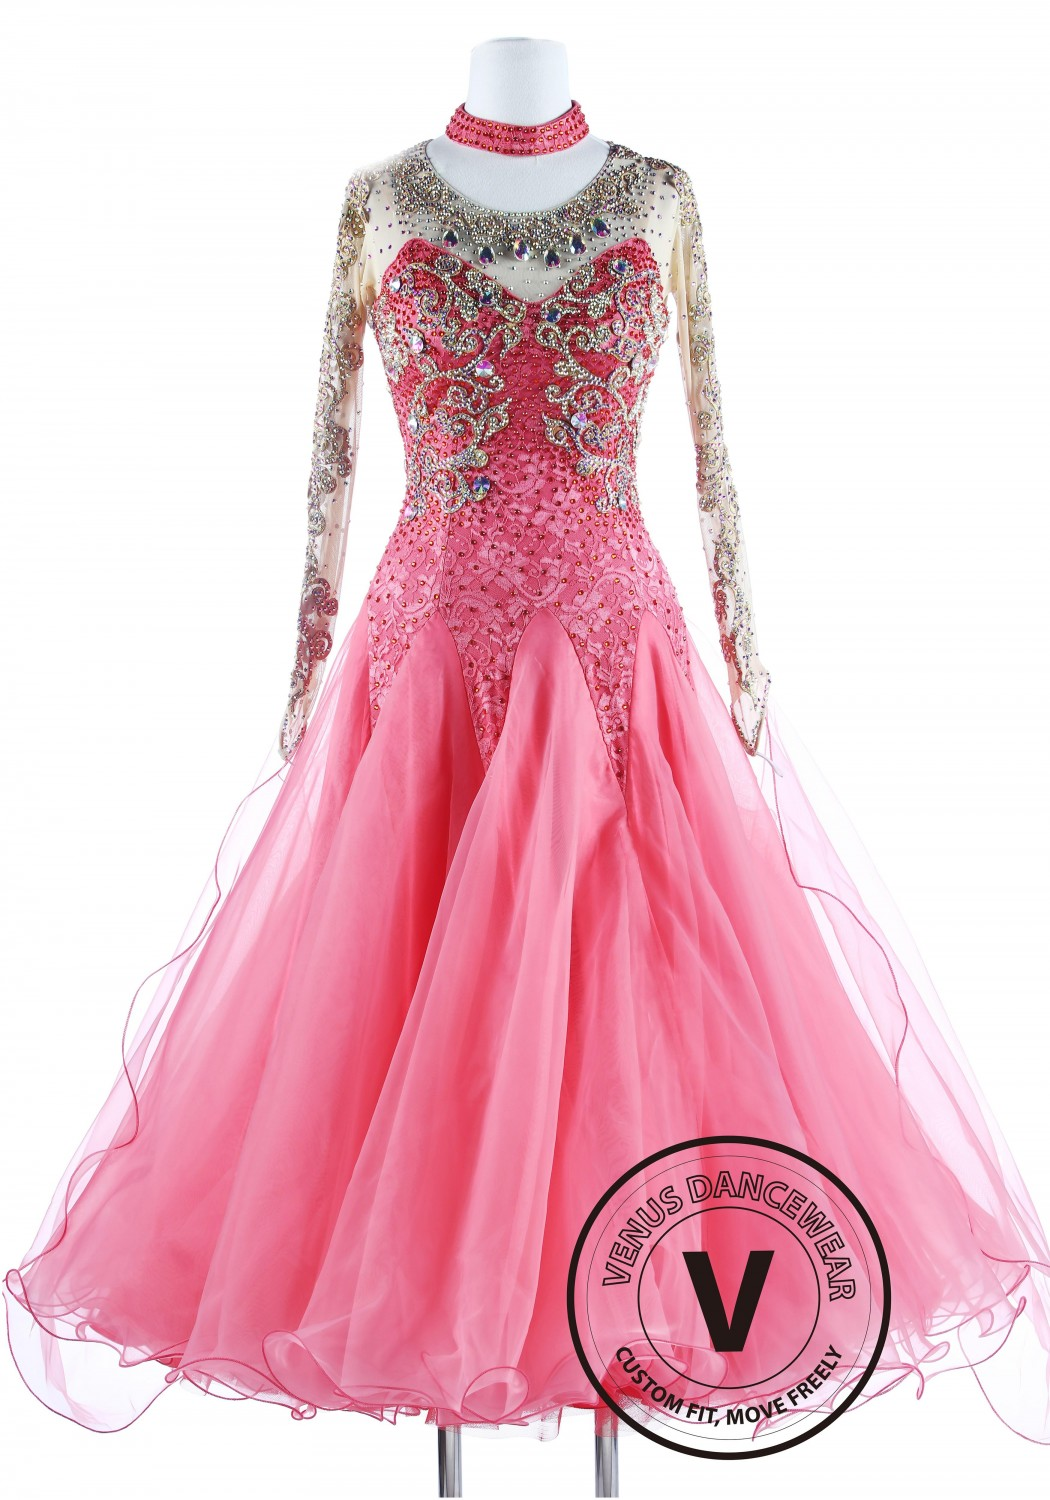 Salmon Lace Gorgeous Standard Waltz Ballroom Competition Dance Dress